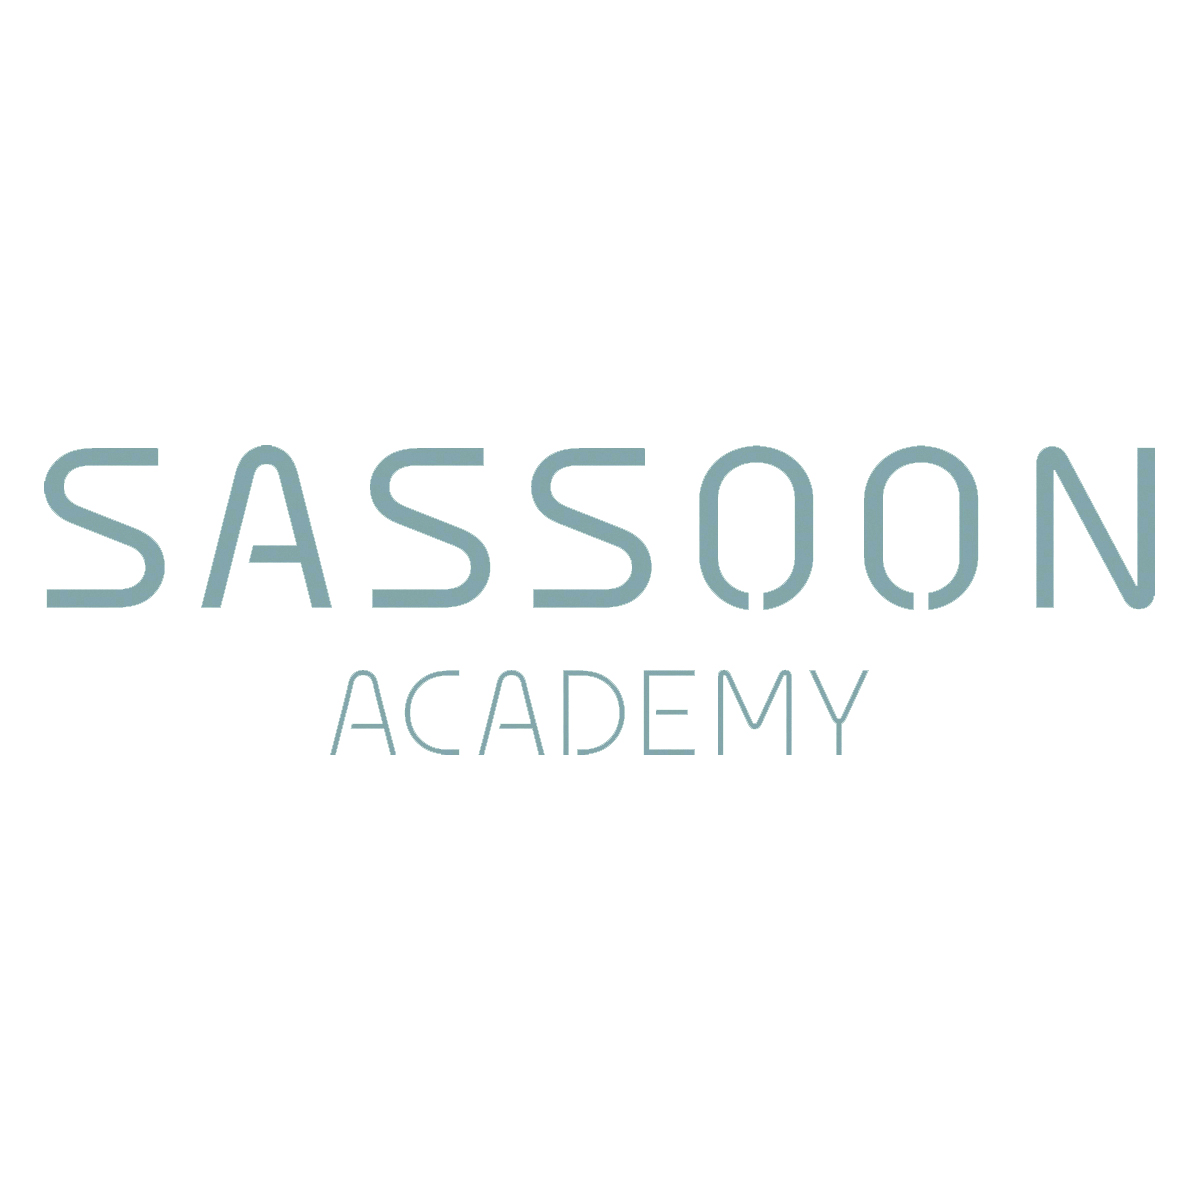 Sassoon-Academy-logo-quad